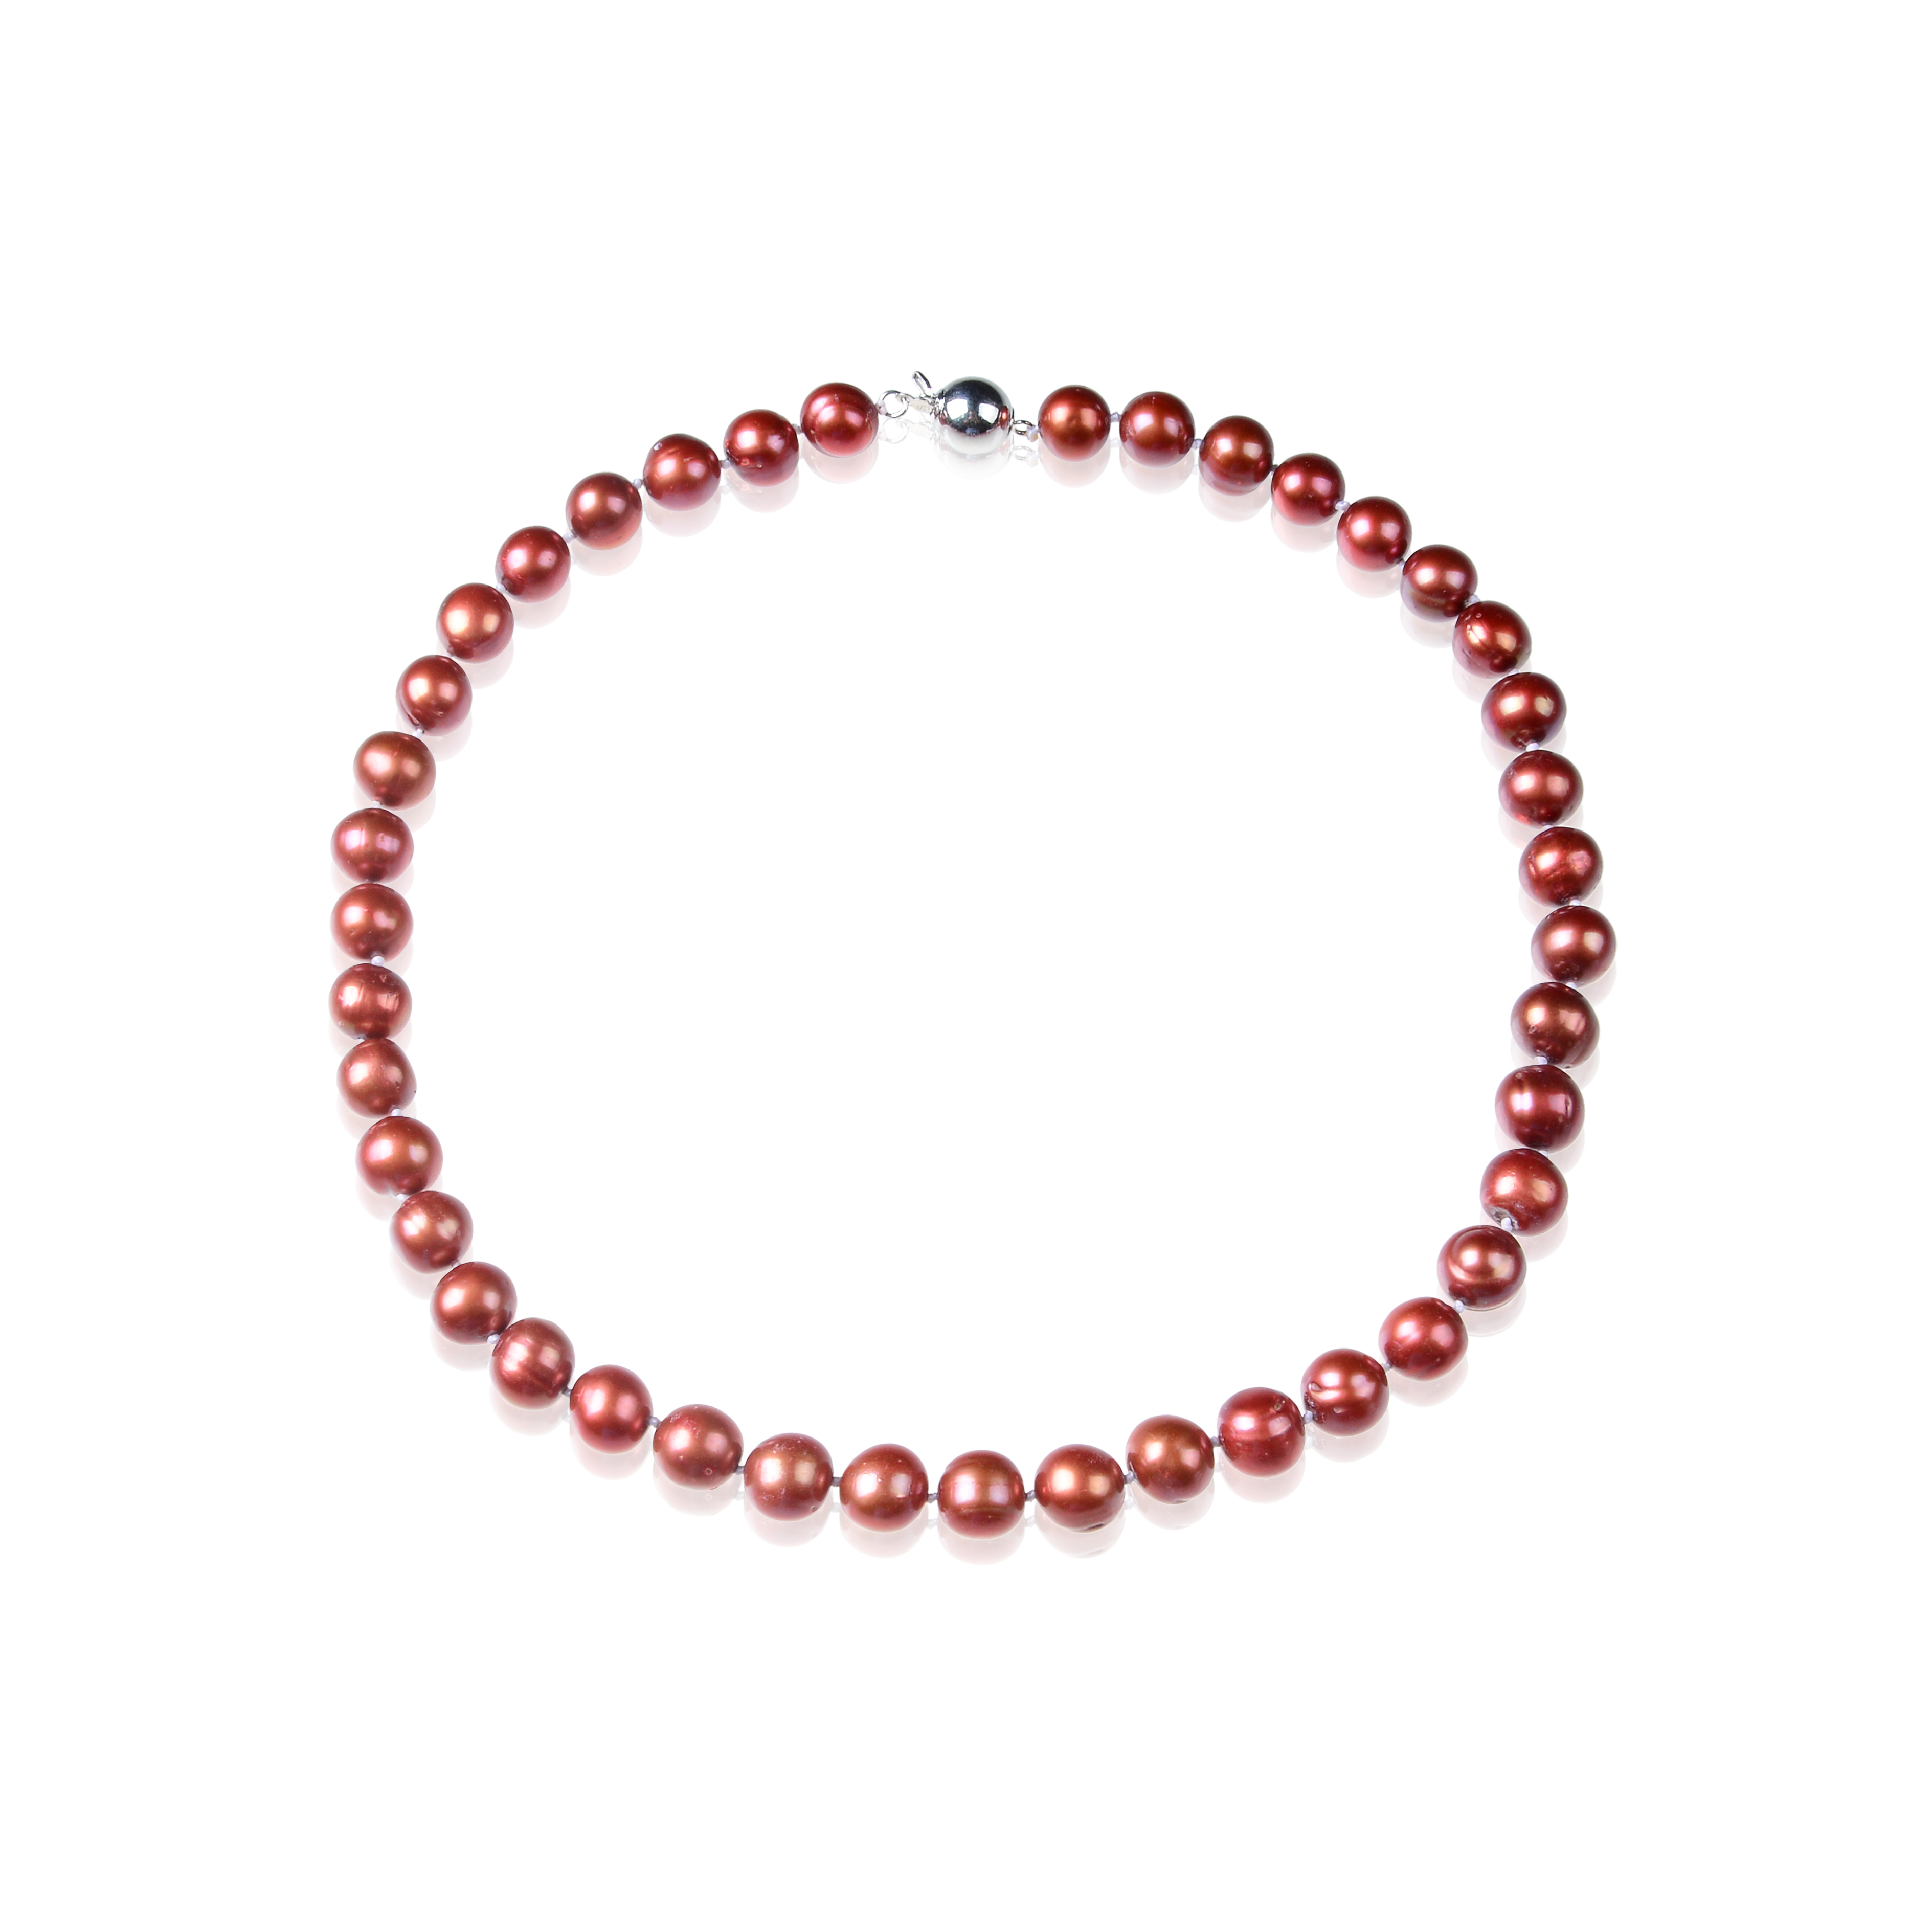 Huge 11mm AAA- Lustrous Freshwater Cultured Cranberry Pearl Necklace -nk64